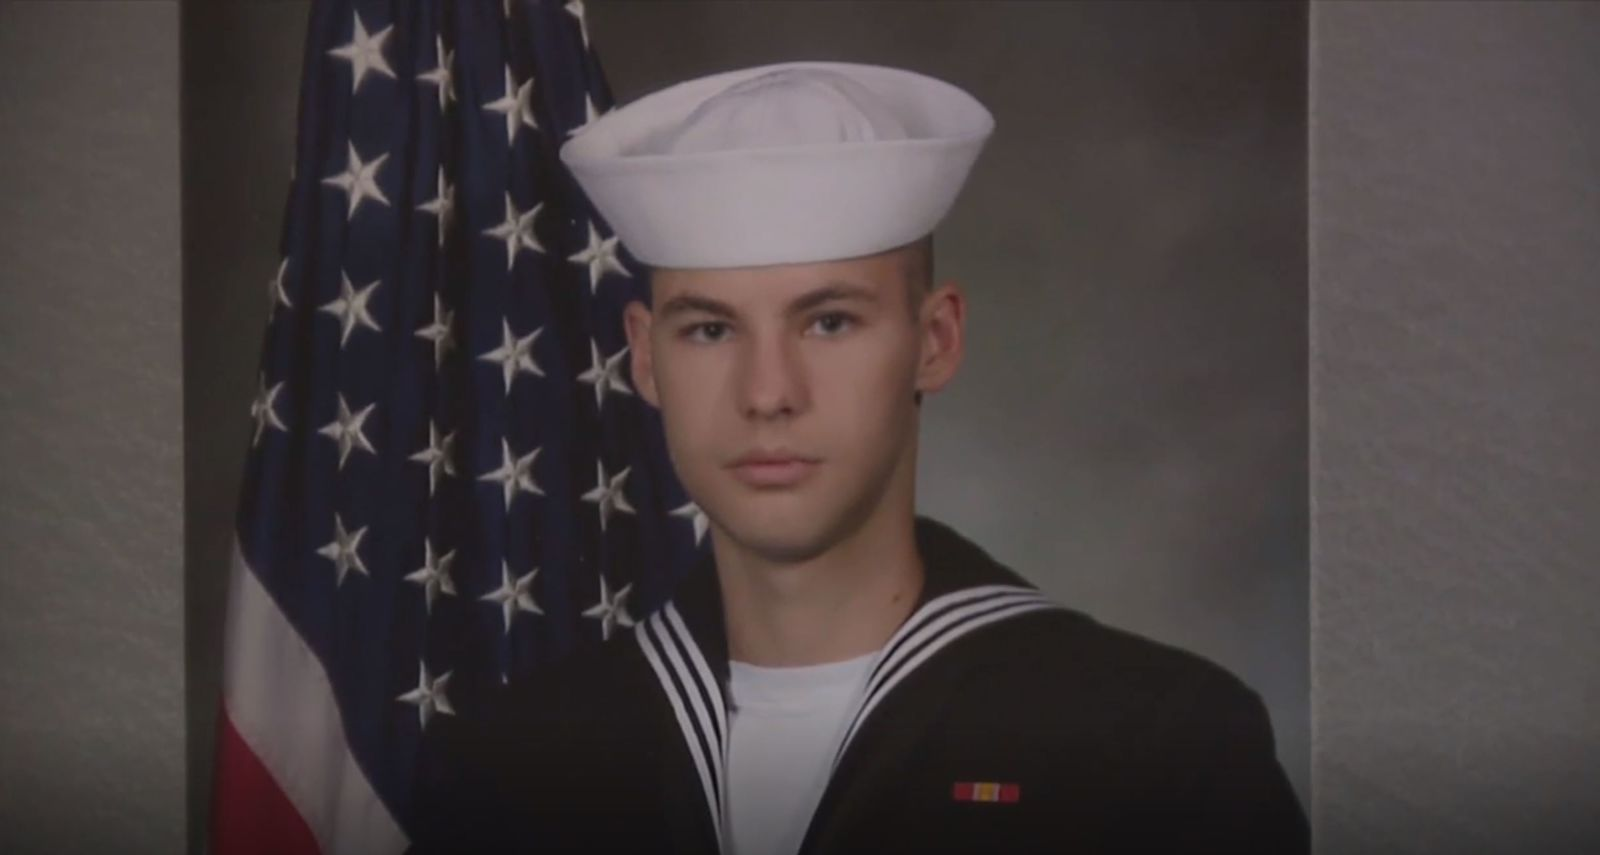 WATCH LIVE:  Naval Air Crewman killed in NAS Pensacola shooting returns home Source: U.S Navy<p></p>